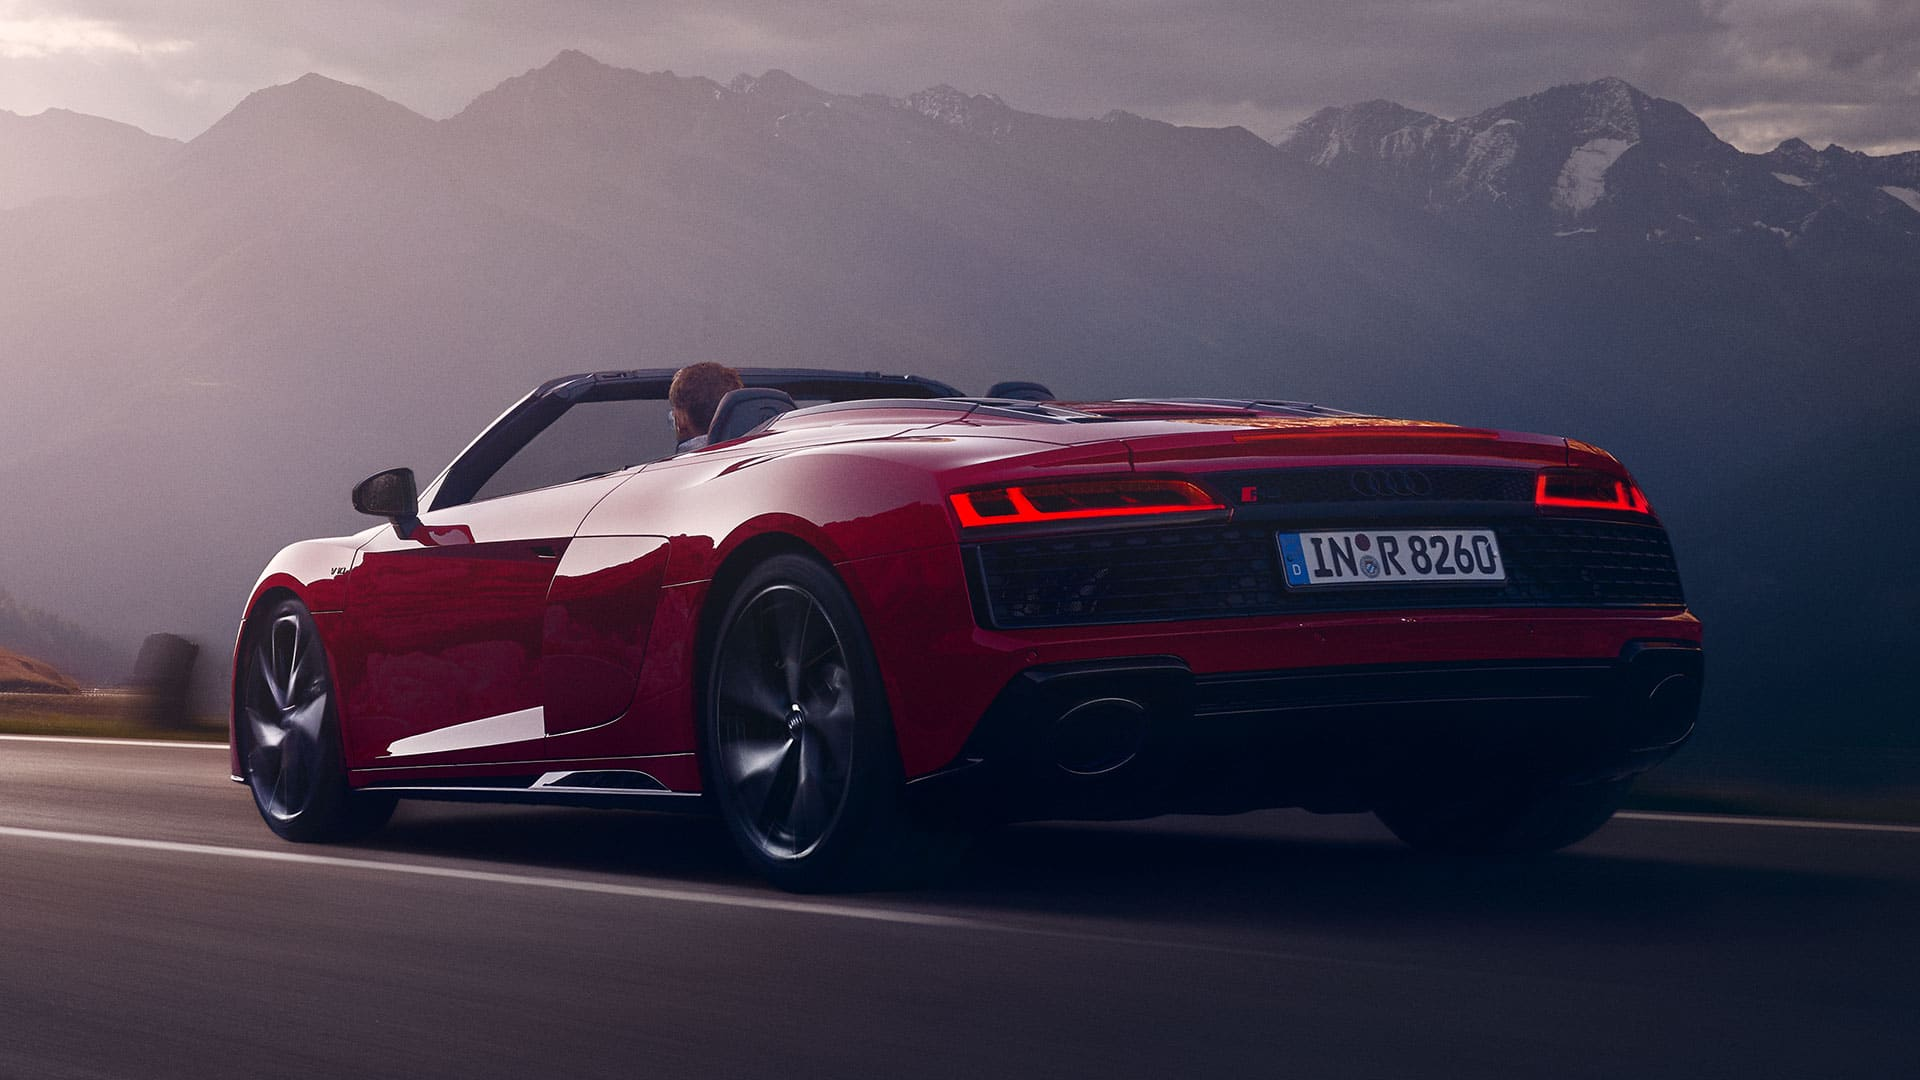 Dynamic side view Audi R8 Spyder V10 RWD